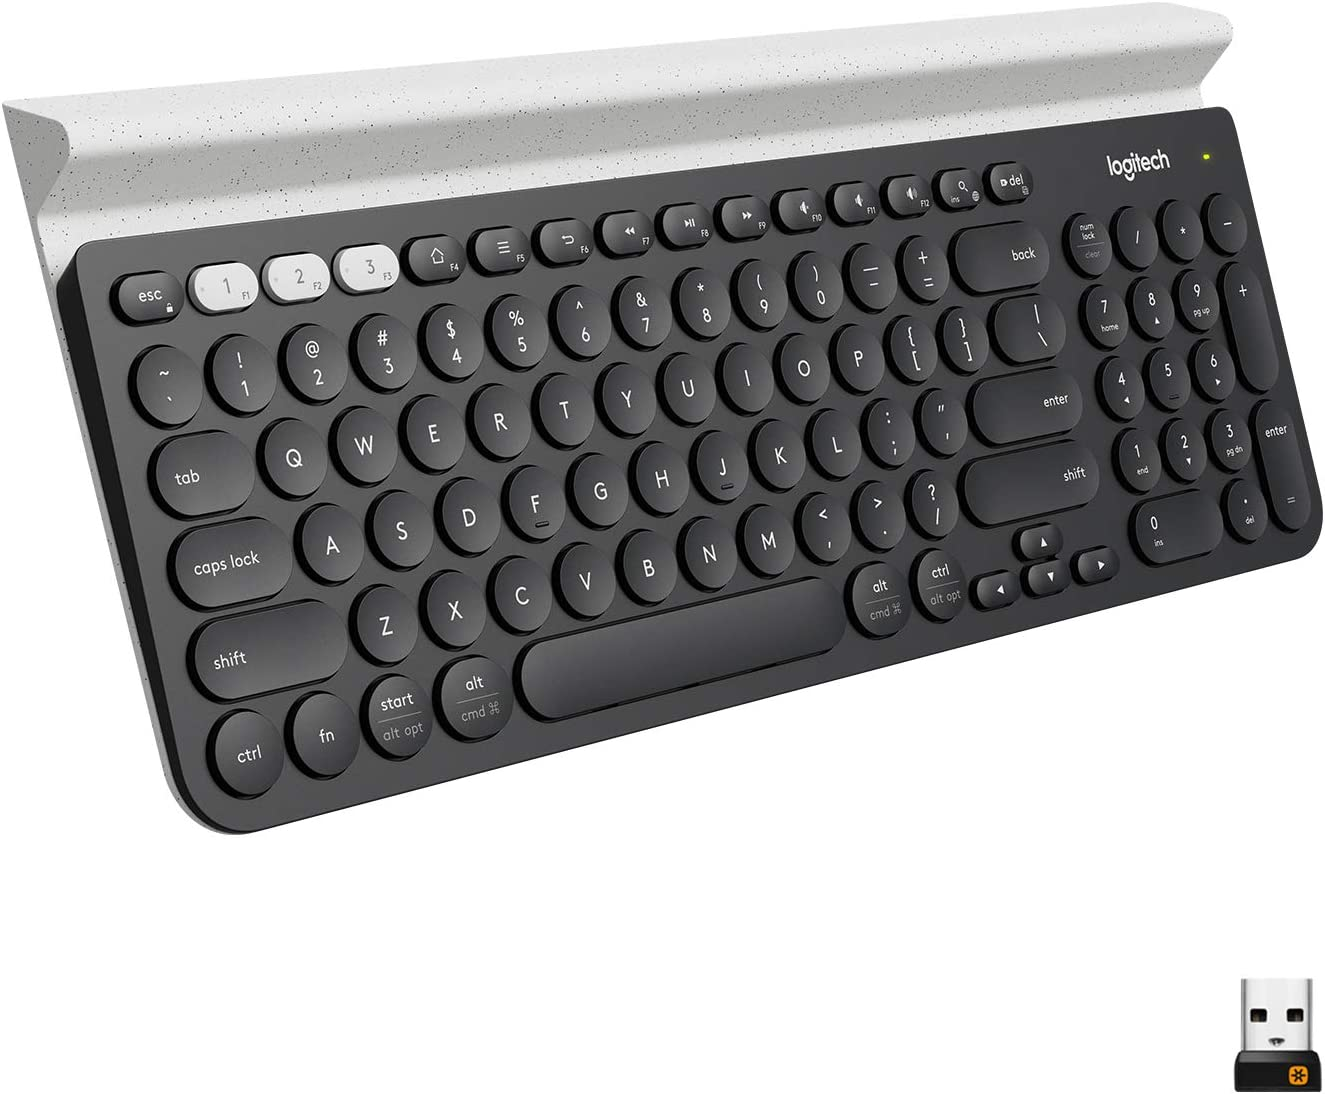 Logitech K780 Multi-Device Wireless Keyboard for Computer, Phone and Tablet – Logitech FLOW Cross-Computer Control Compatible: Computers & Accessories